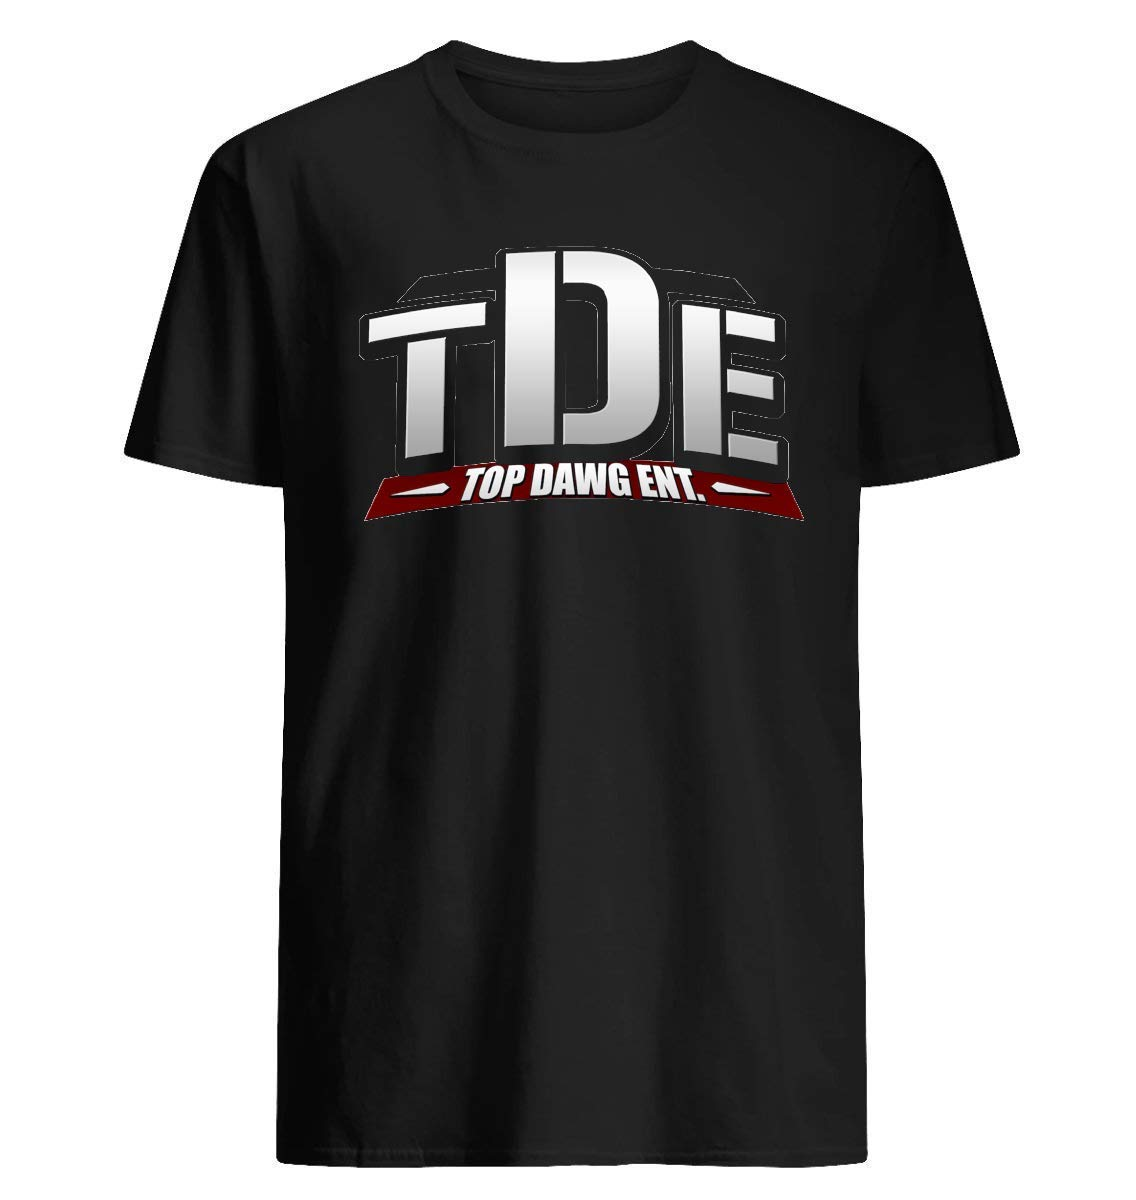 Tde Lightweight Fabric With Great Stretch For Comfort Shirts